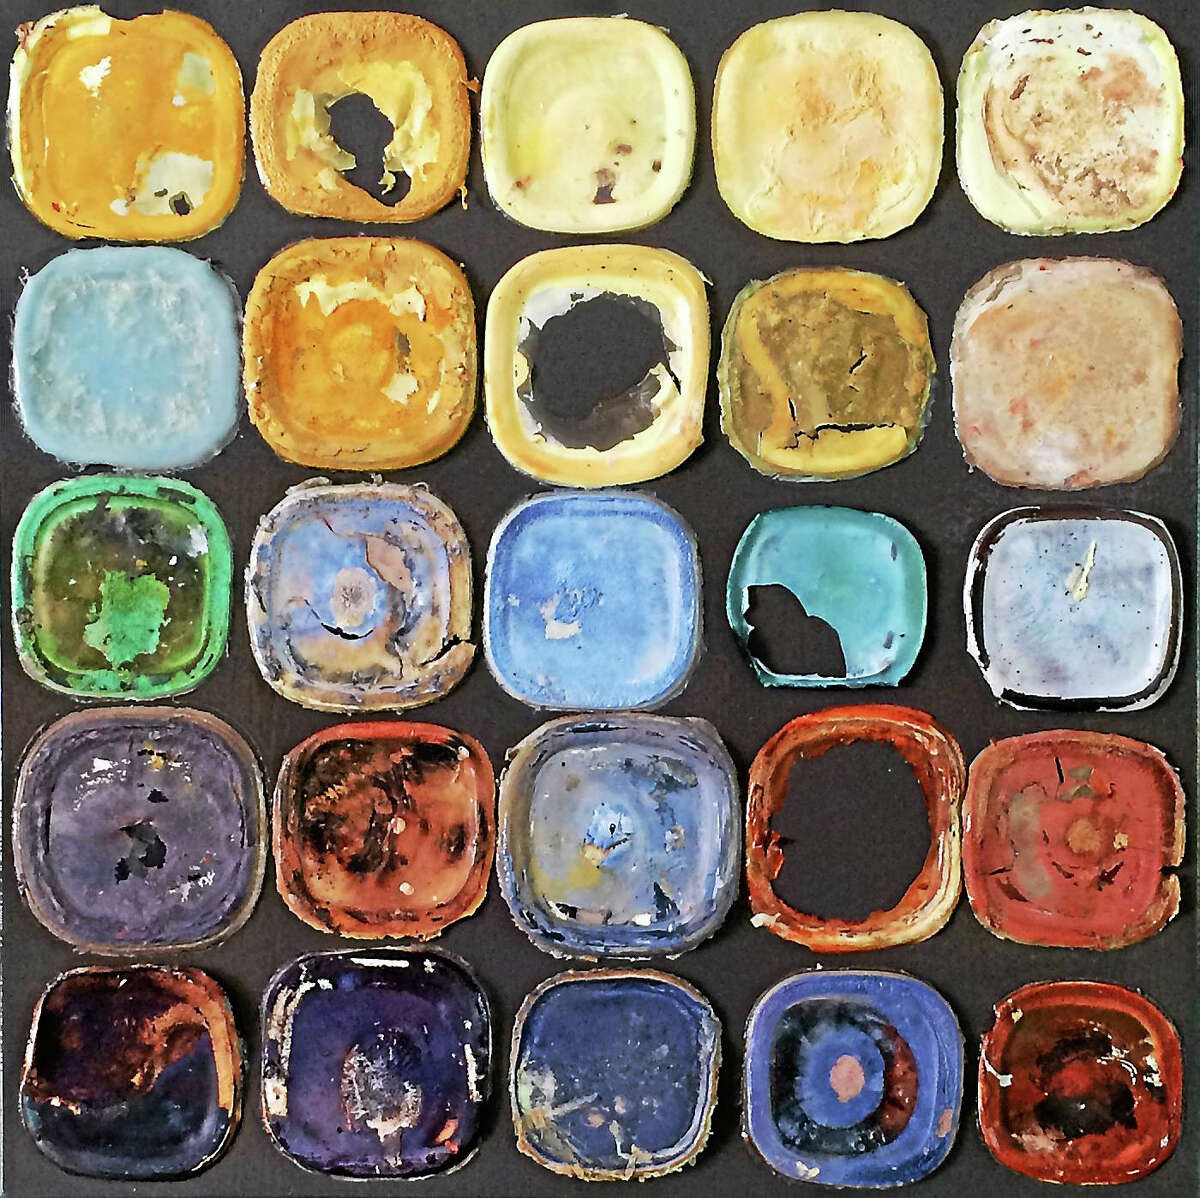 Katie Samuelson's Product of Process is part of an exhibition ofMaple & Main Gallery artists showing their work at the Zahn gallery at Middlesex Hospital Shoreline Medical Center in Westbrook.